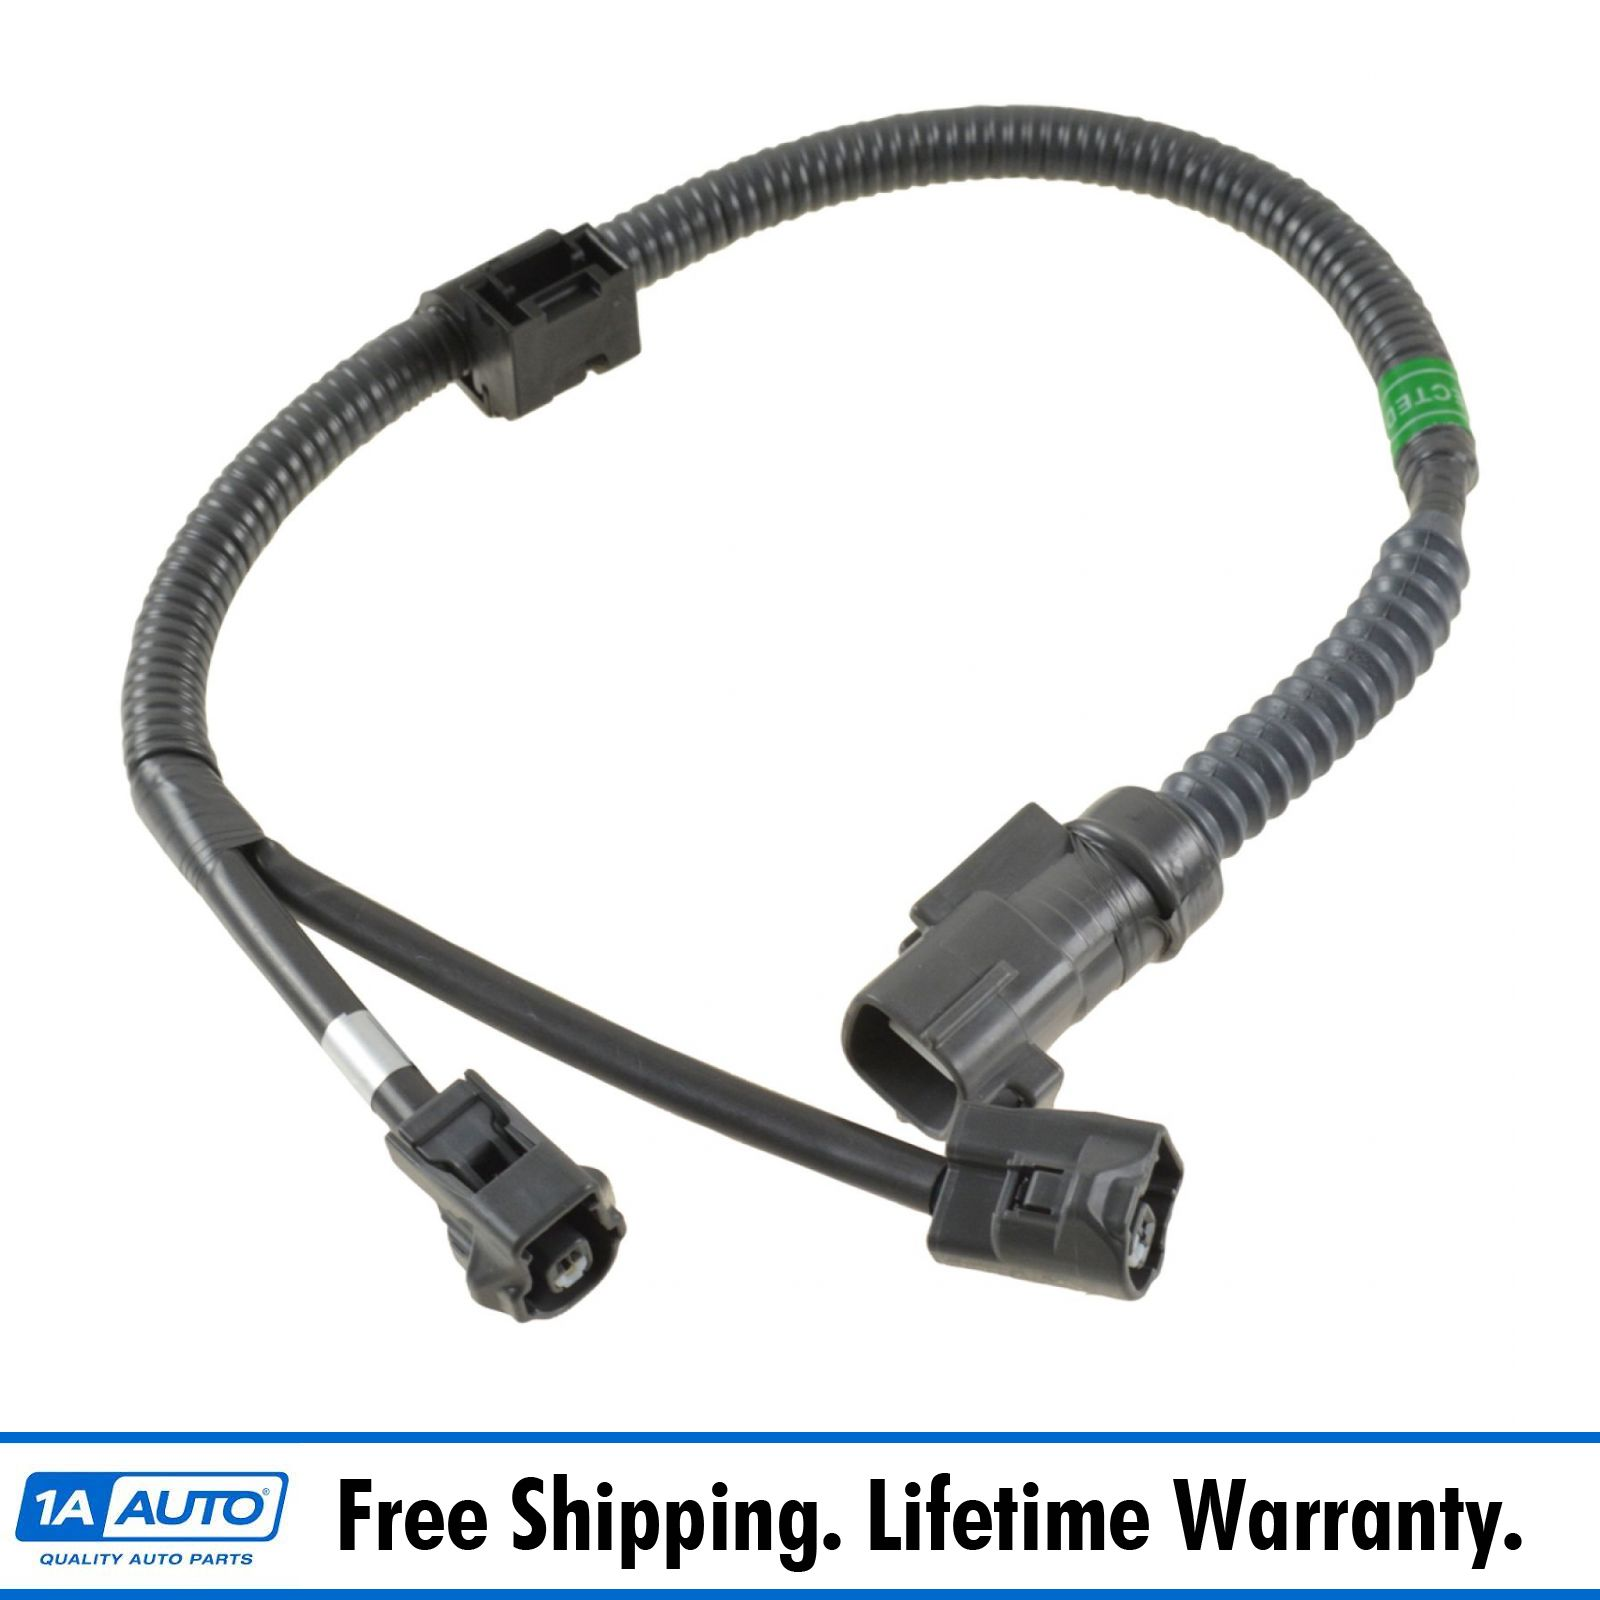 hight resolution of charging wire harness 1995 lexus sc300 simple wiring diagram options 1995 lexus covertible charging wire harness 1995 lexus sc300